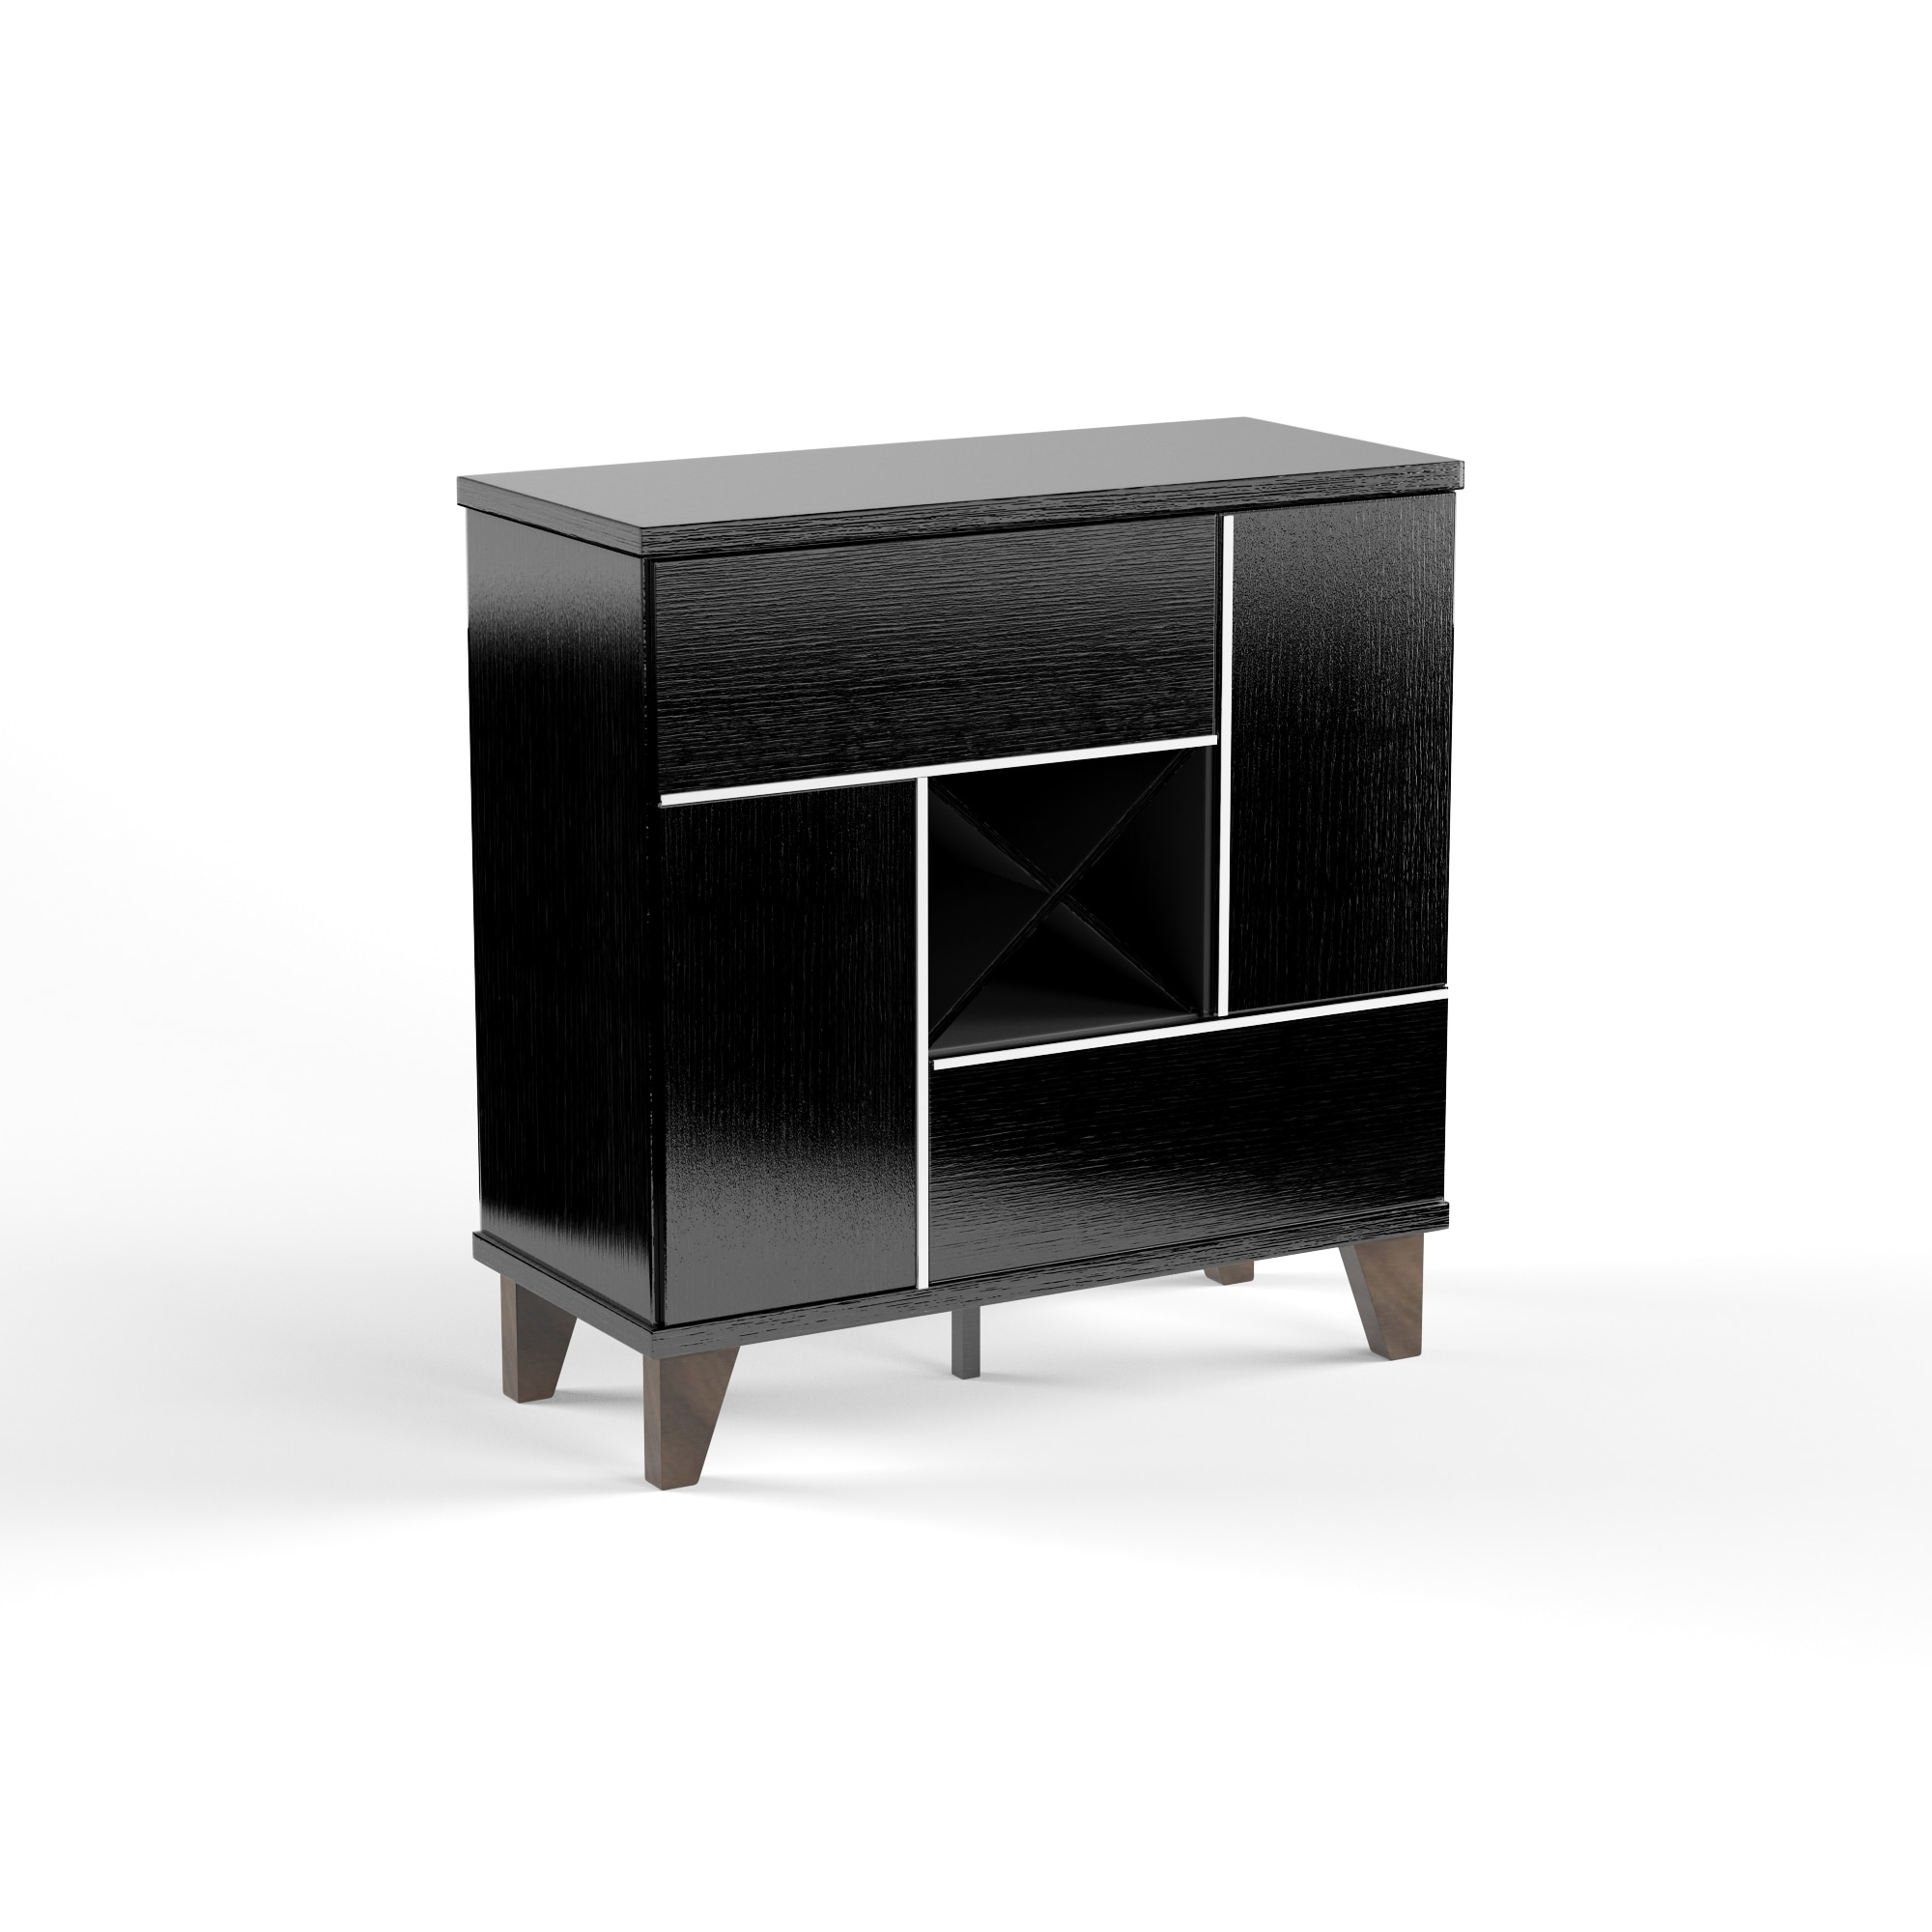 Furniture Of America Trinton Modern Multi Storage Black Wine Bar/Cabinet